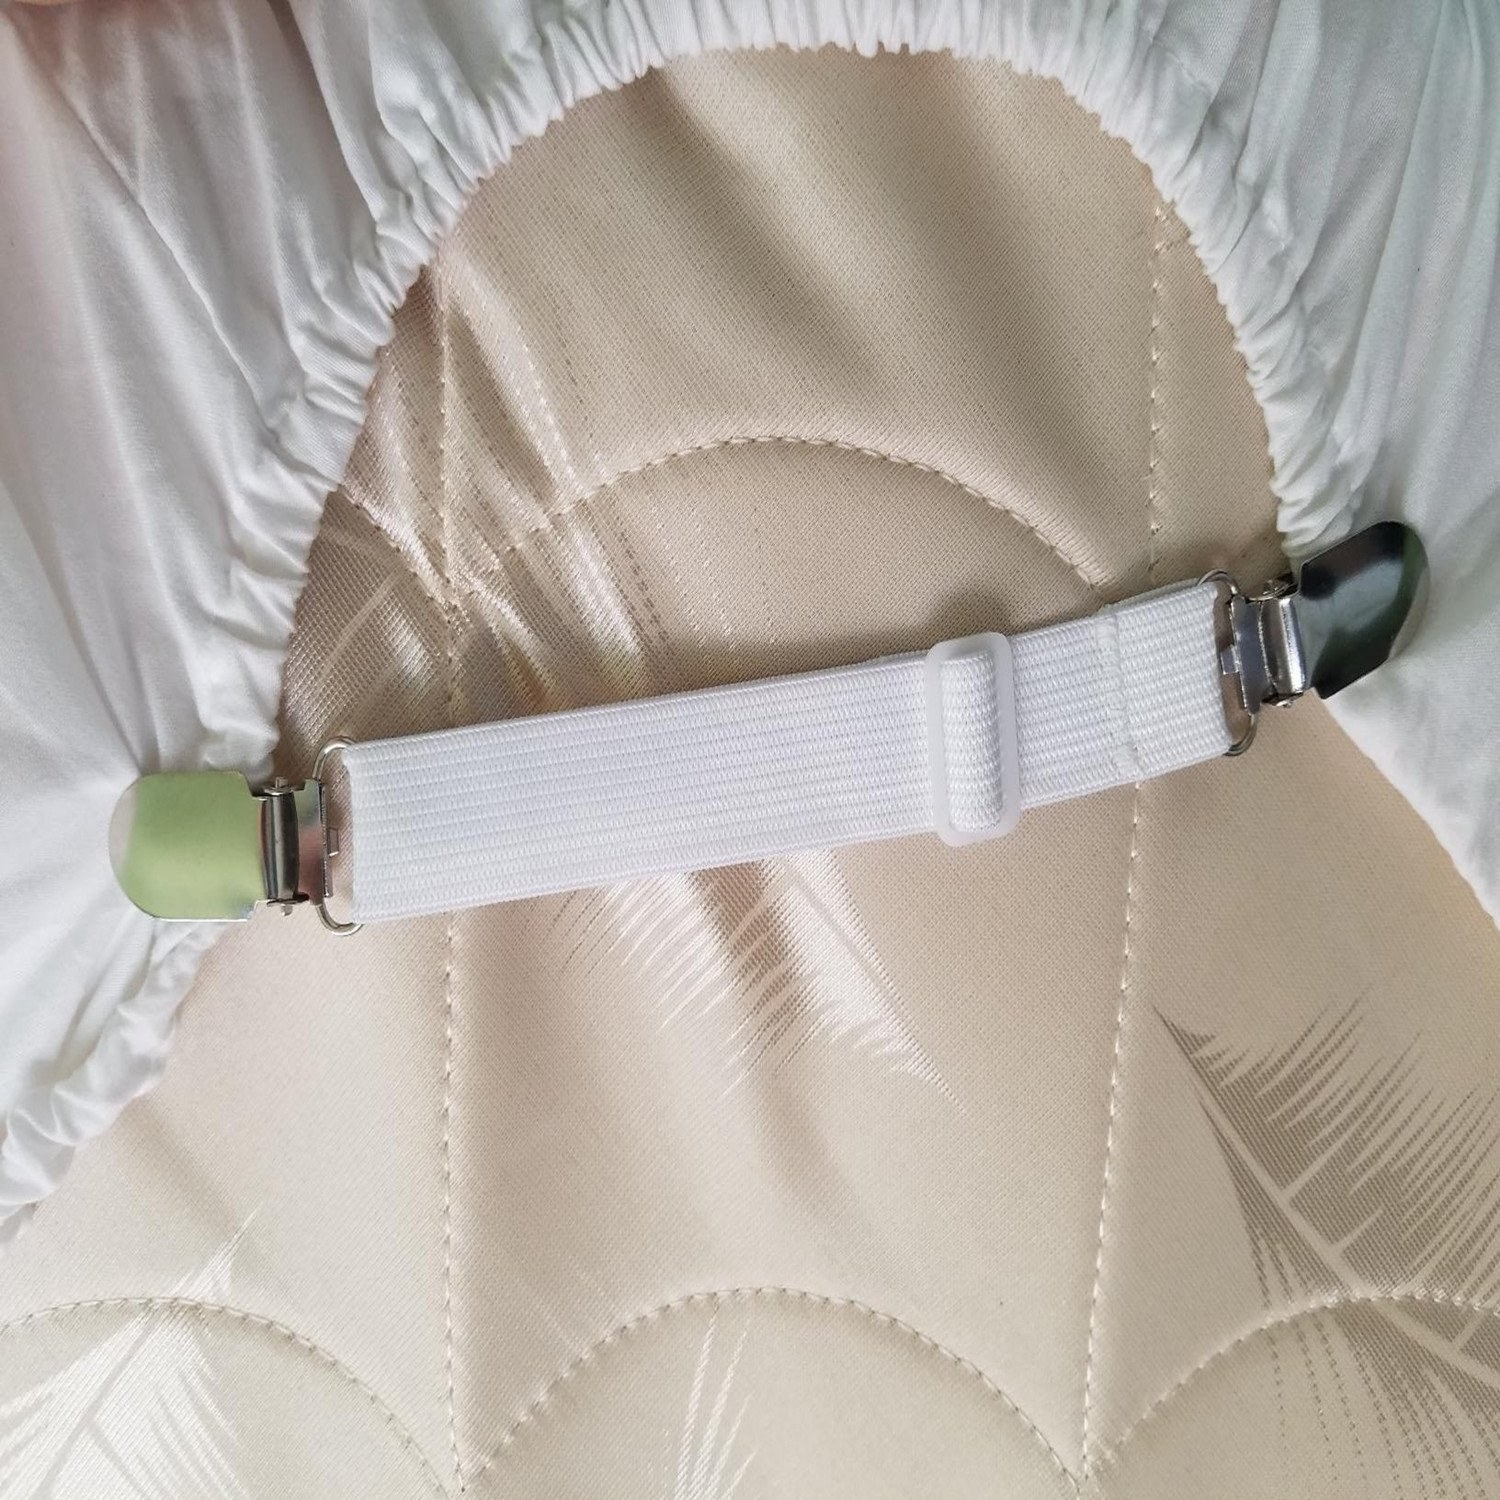 reviewer pic of the suspender holding a fitted sheet in place